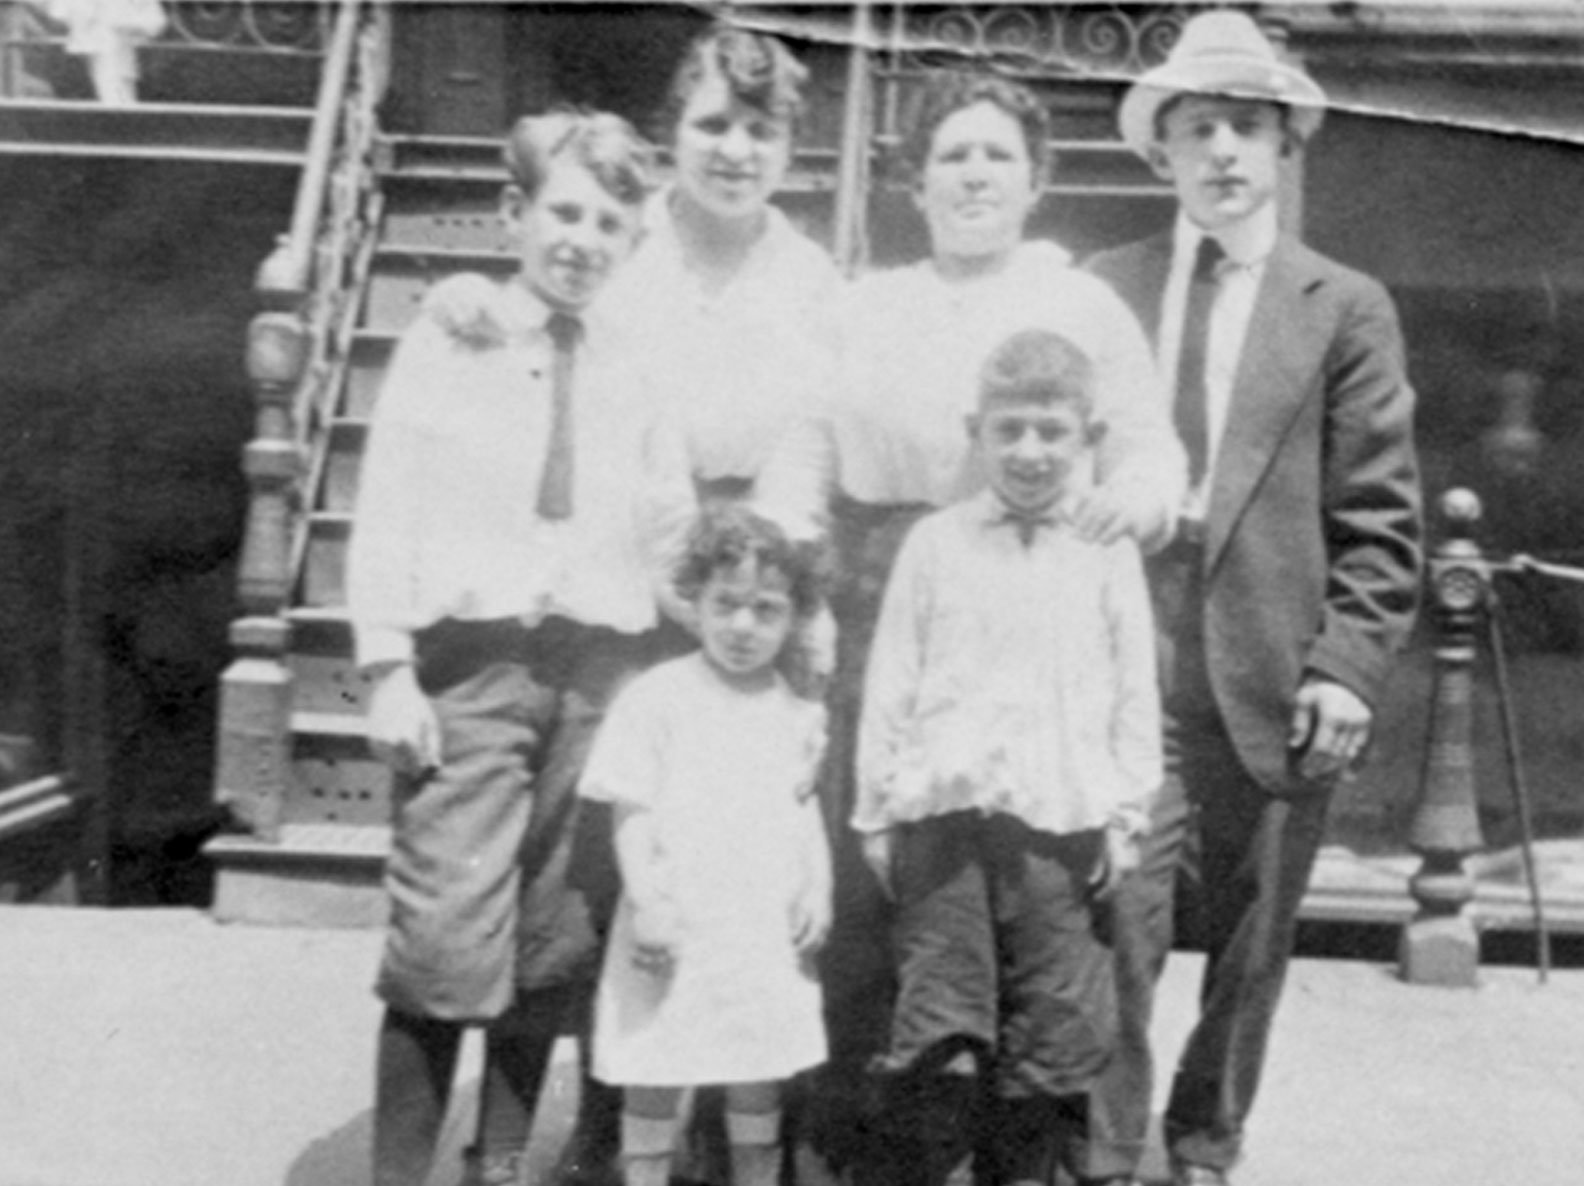 Photo portrait of the Levine family in front of 97 Orchard Street circa 1900